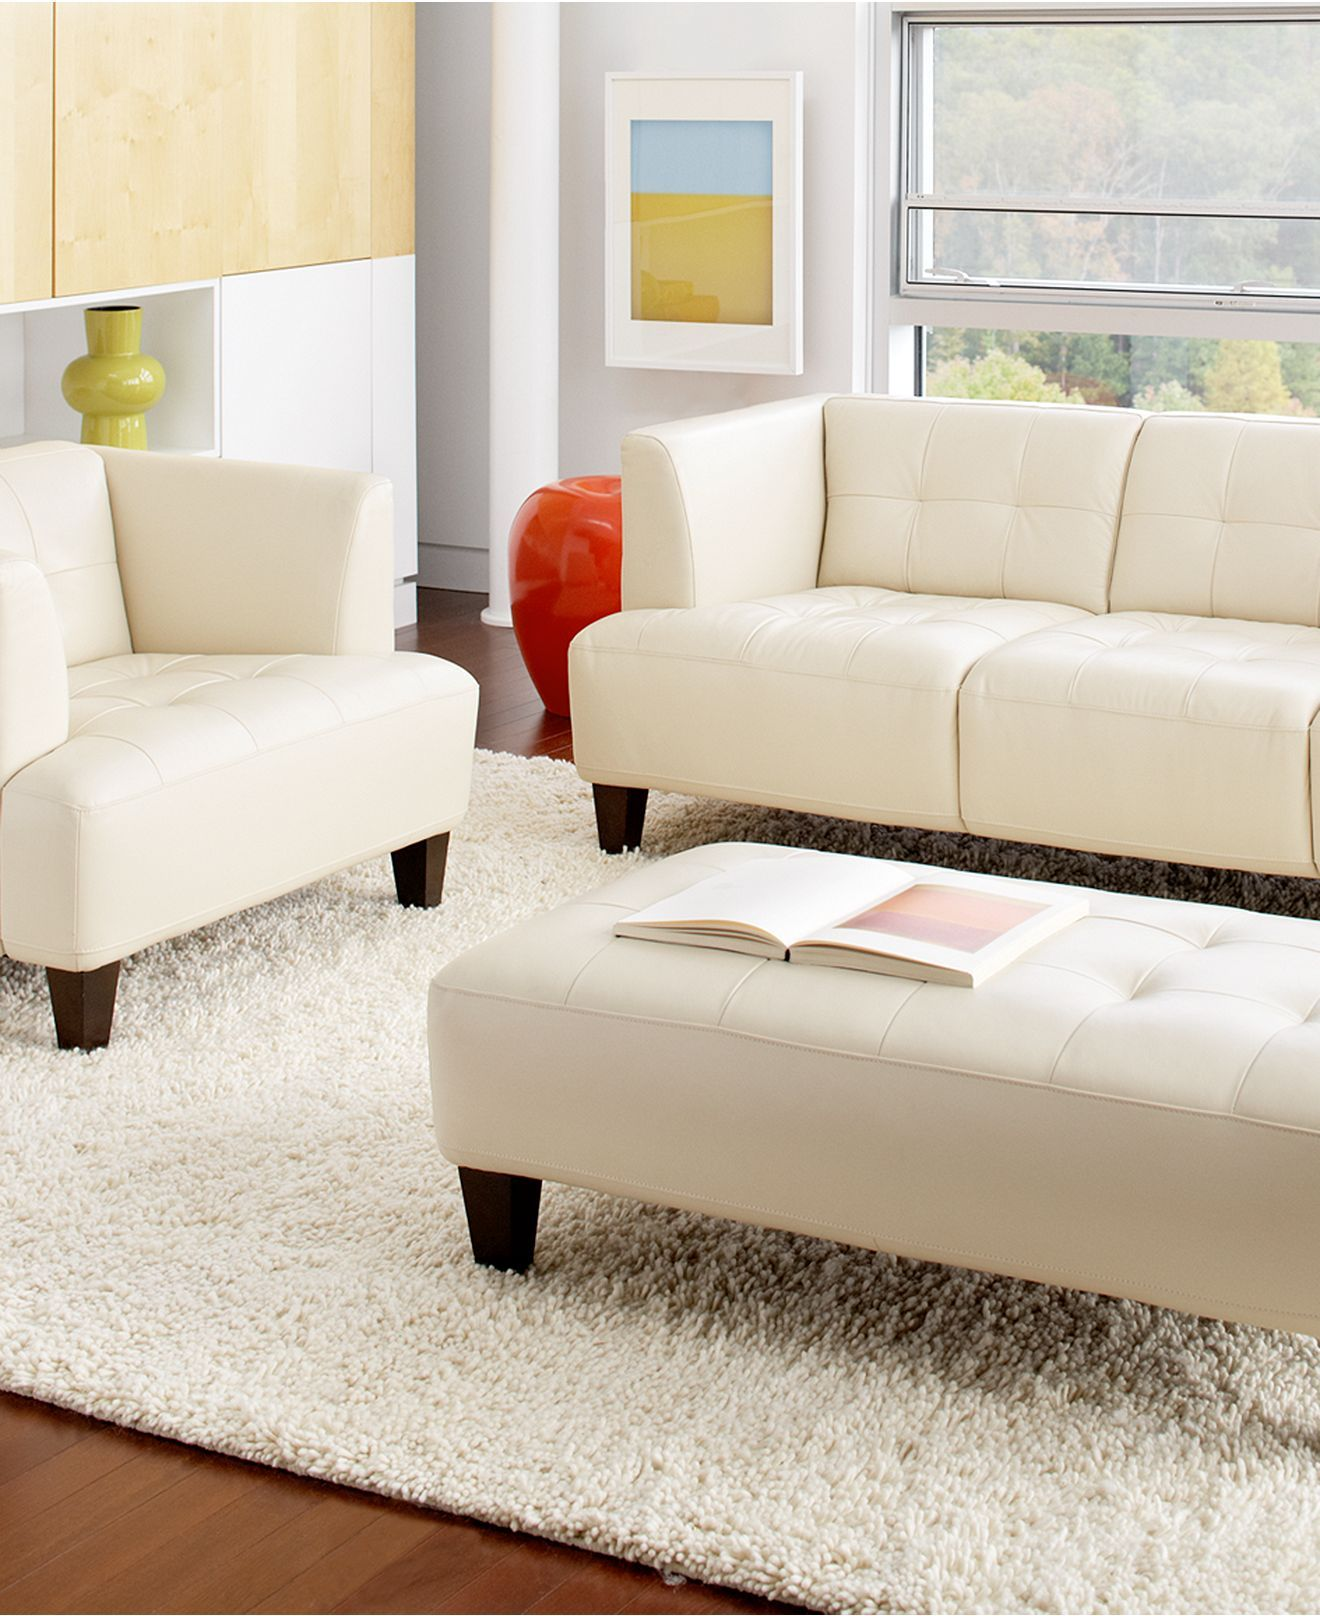 Alessia Leather Sofa Living Room Furniture Sets & Pieces - furniture ...